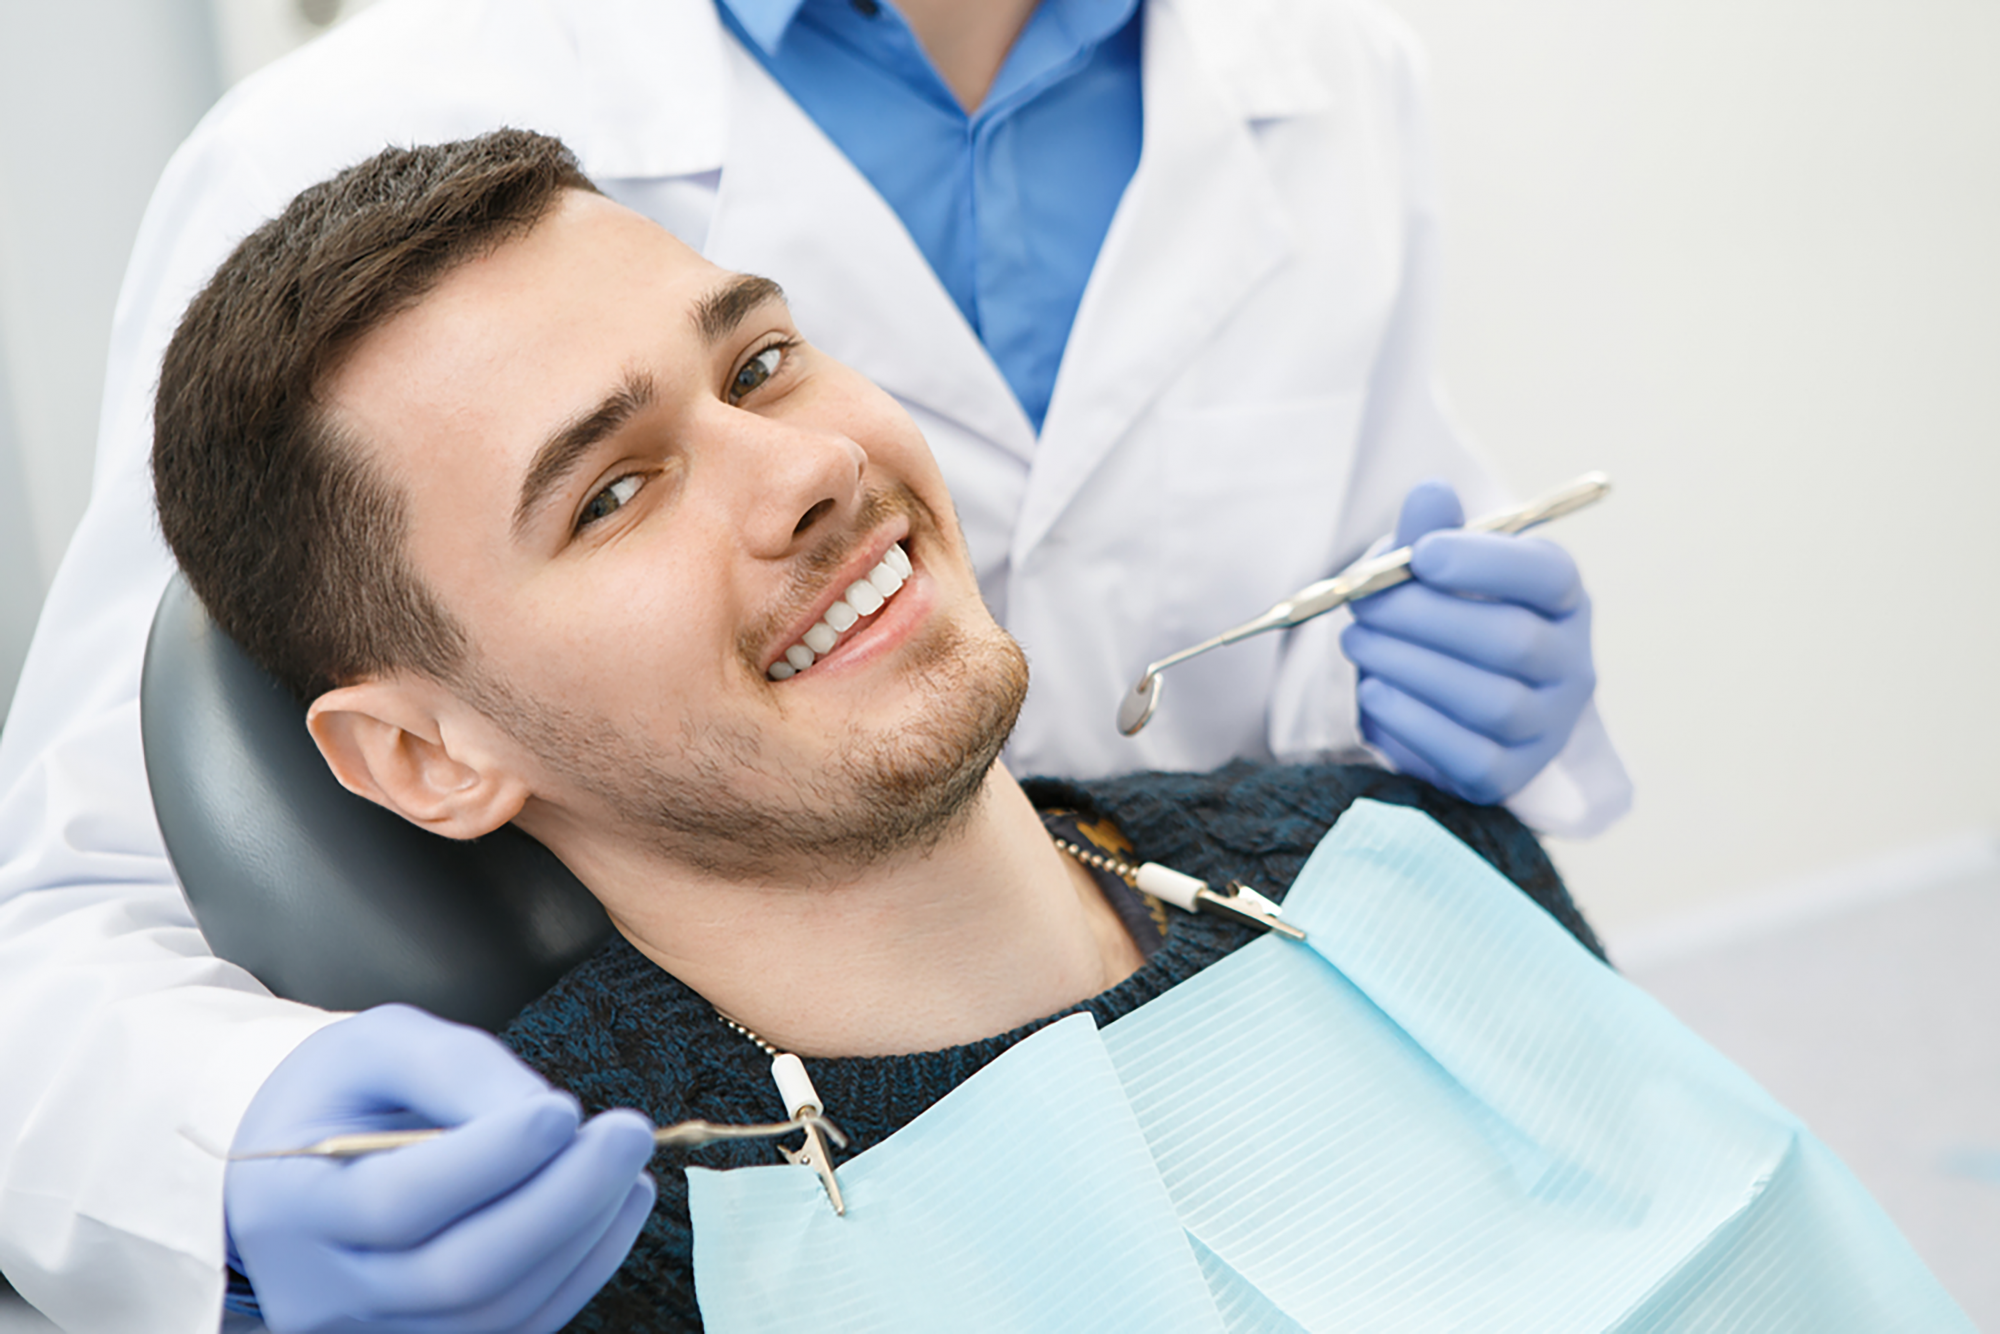 dental-implant-surgery-and-recovery